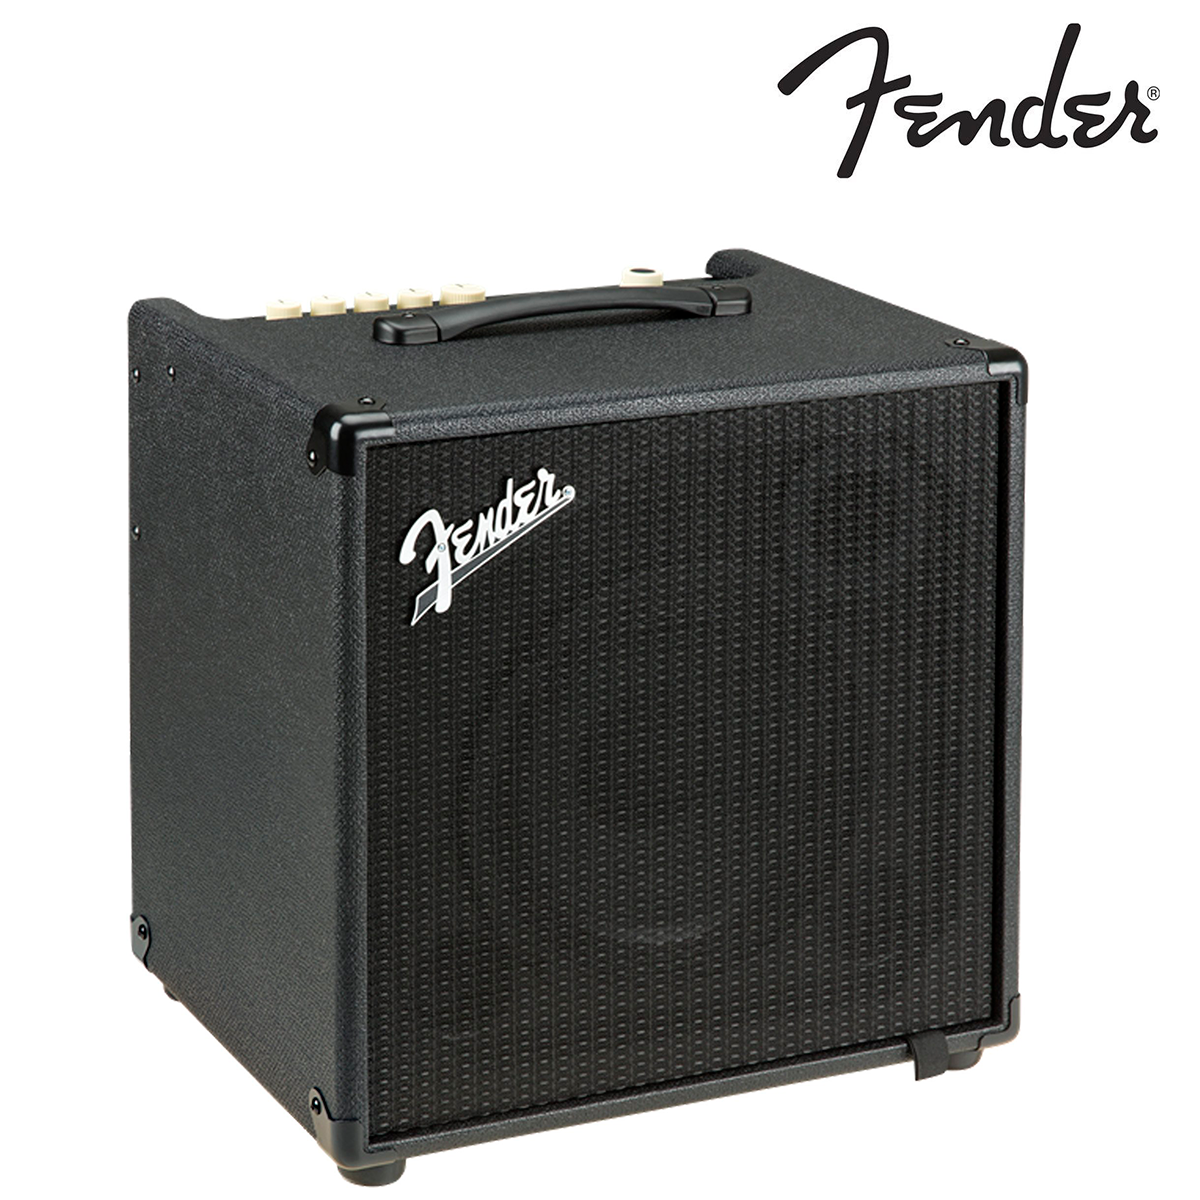 AMPLIFICADOR RUMBLE STUDIO 40 120V